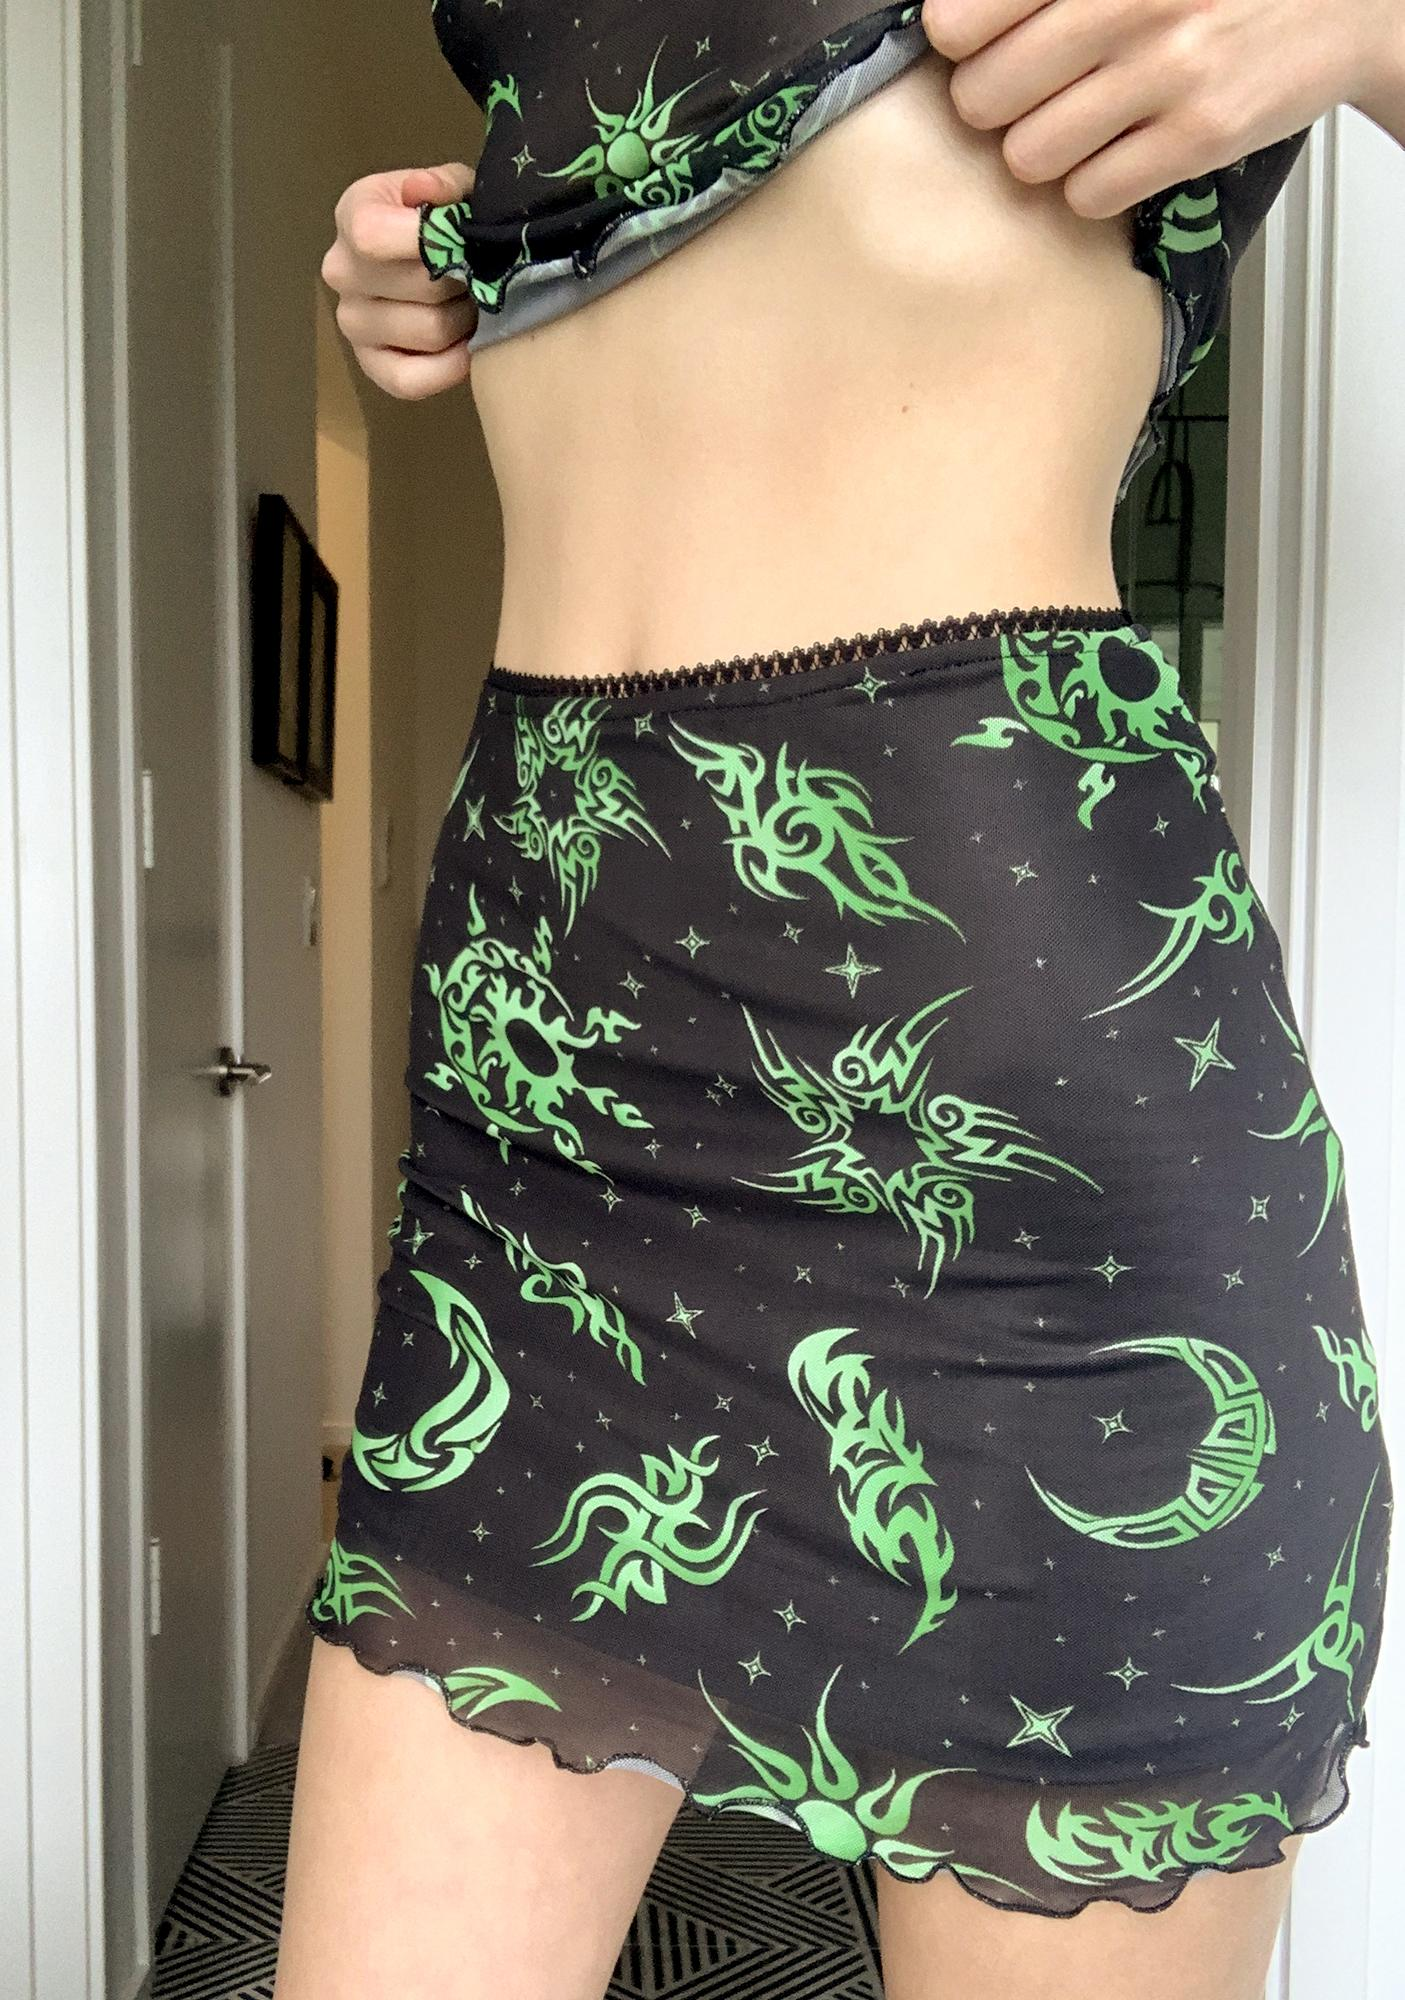 HOROSCOPEZ Venus Envy Mesh Skirt